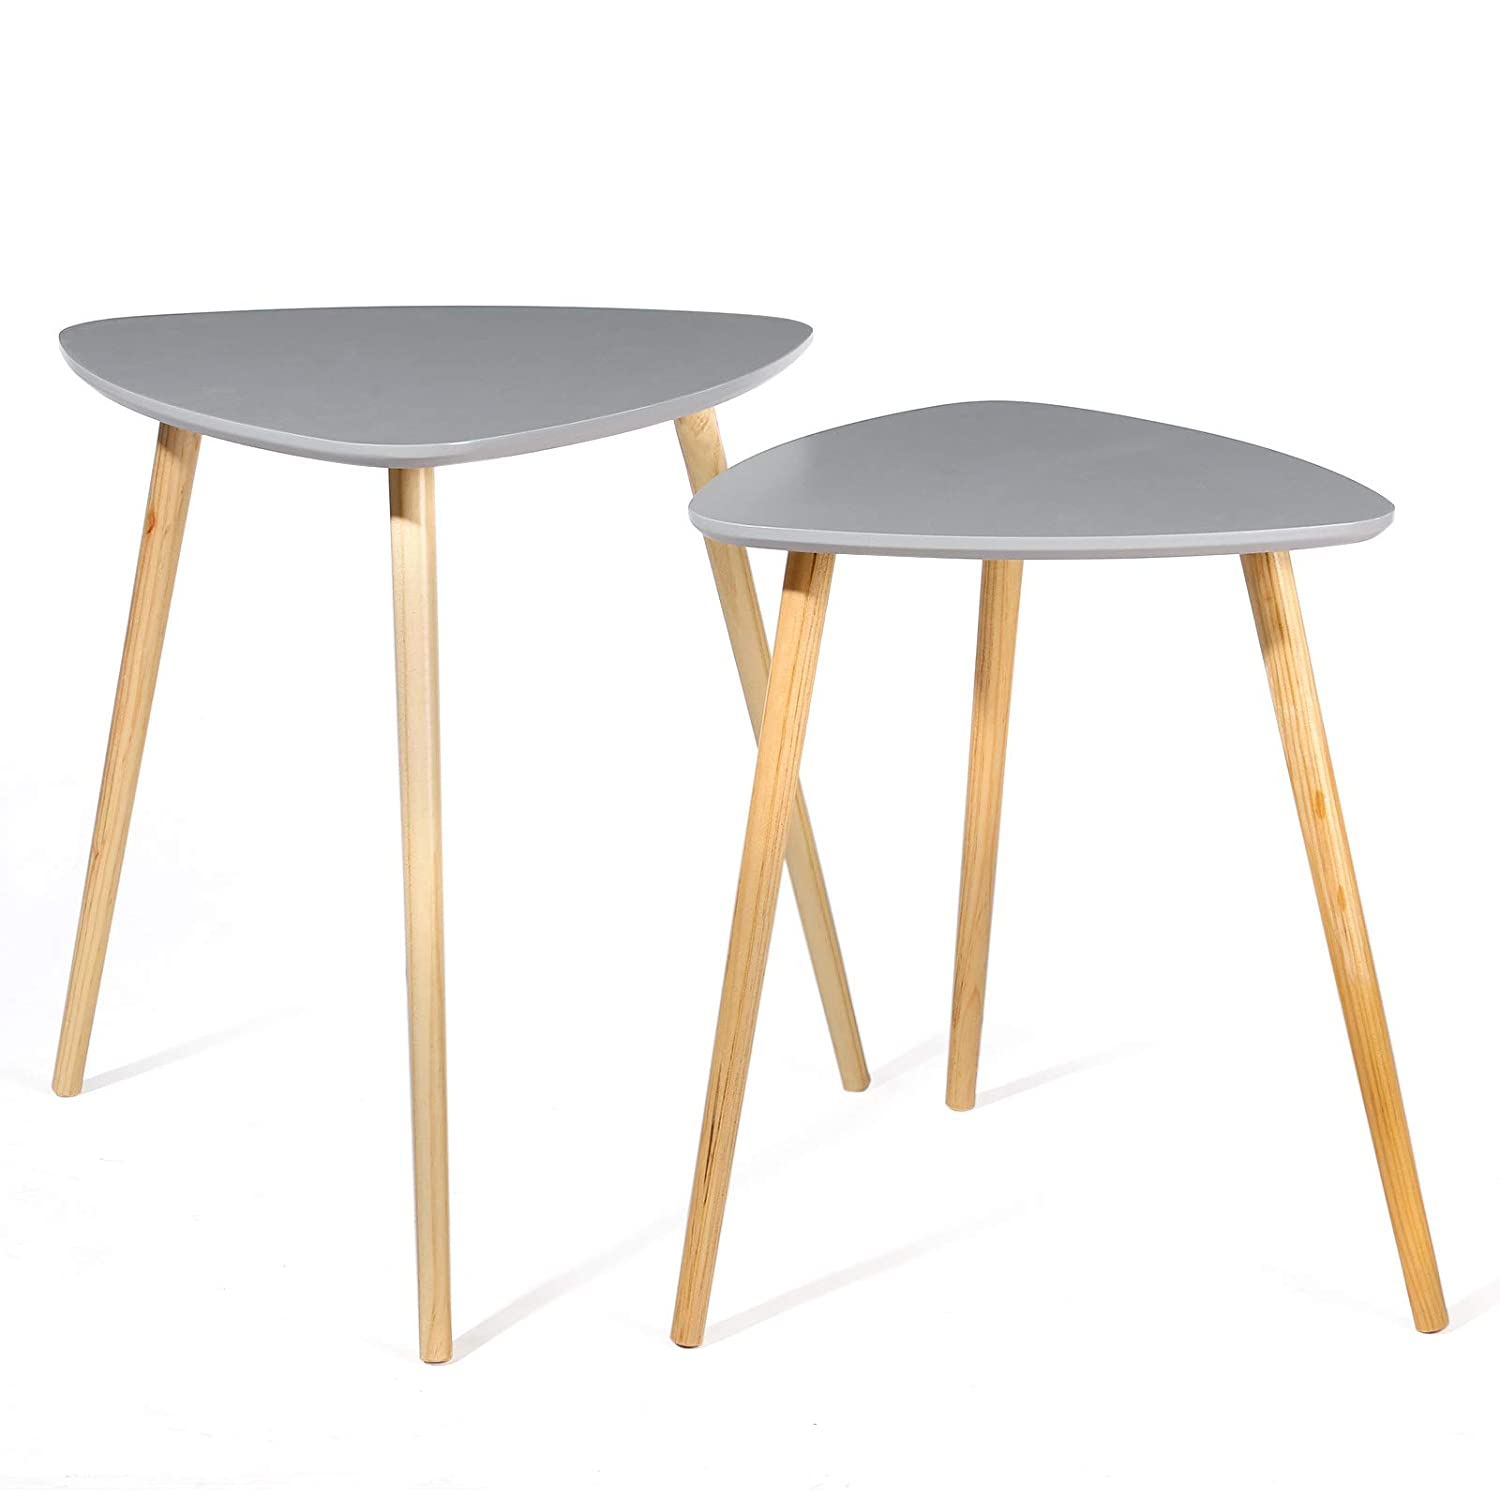 "SONGMCIS Nesting Tables Round Coffee End Tables Night Stand Modern Minimalist Multi-Purpose ""Daffodil Series"" Accent Furniture for Living Room Bedroom Kid's Room, Nature White Tabletop ULET07WN SONGMICS"